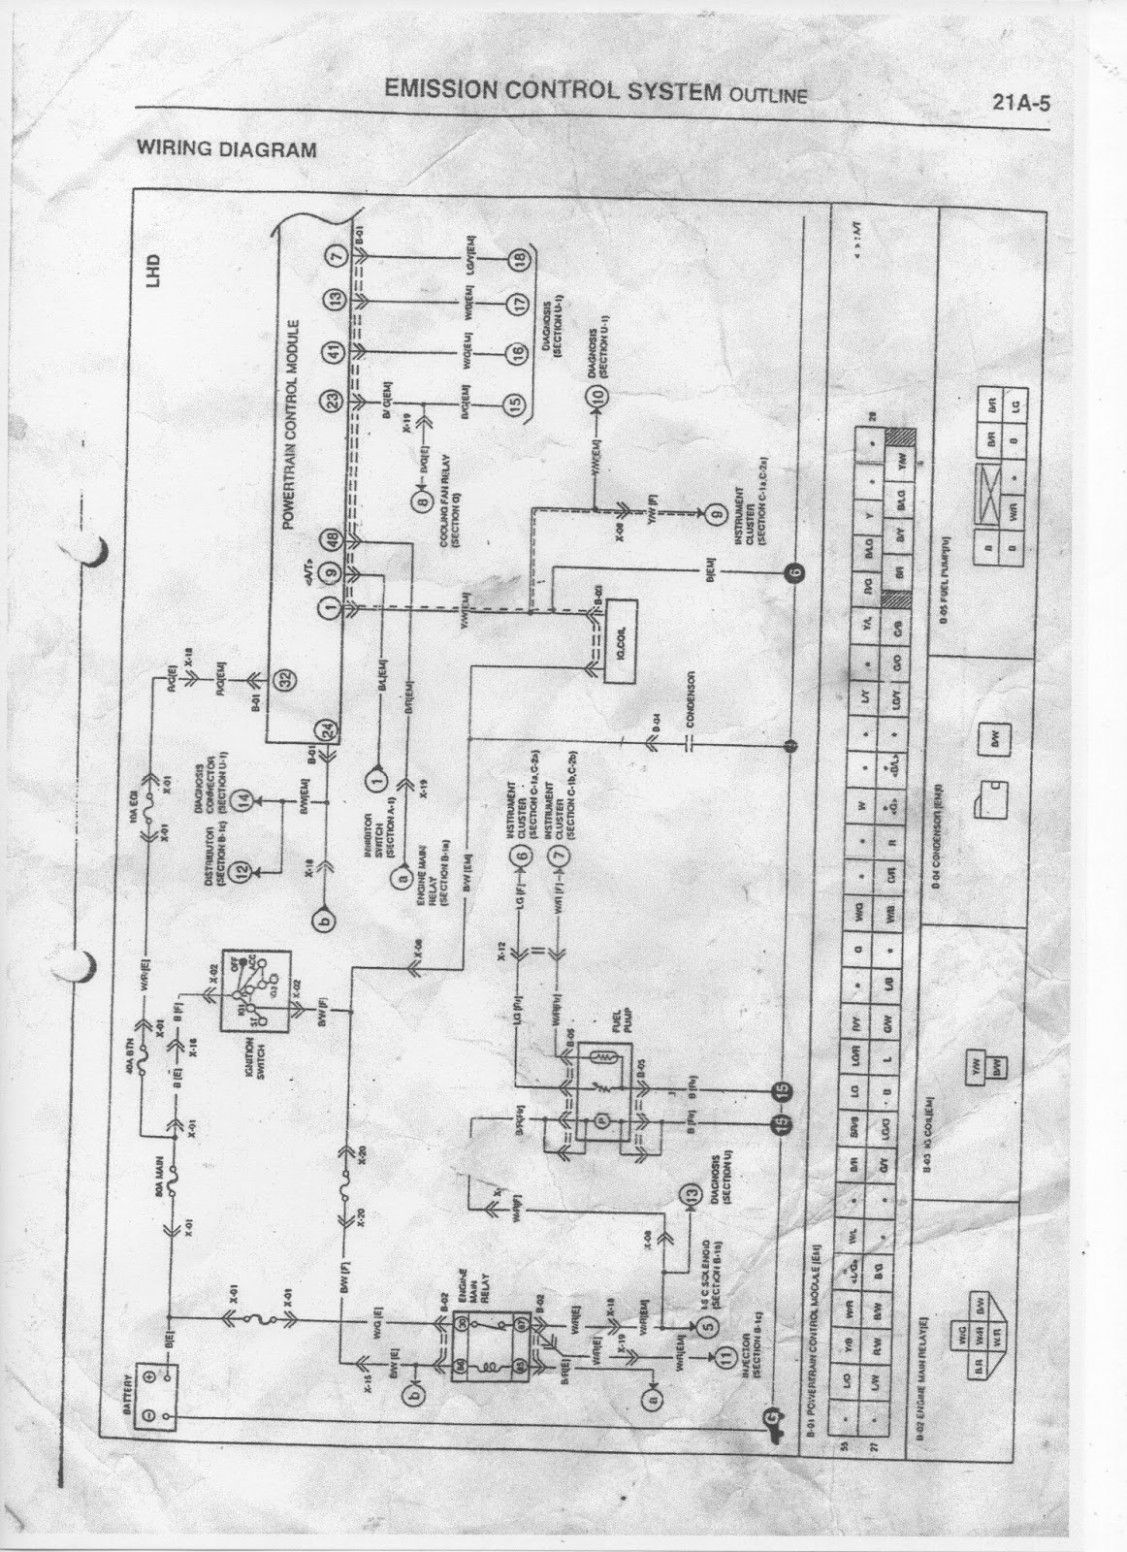 Daihatsu Hijet Engine Diagram Xl di 2020 | MobilPinterest